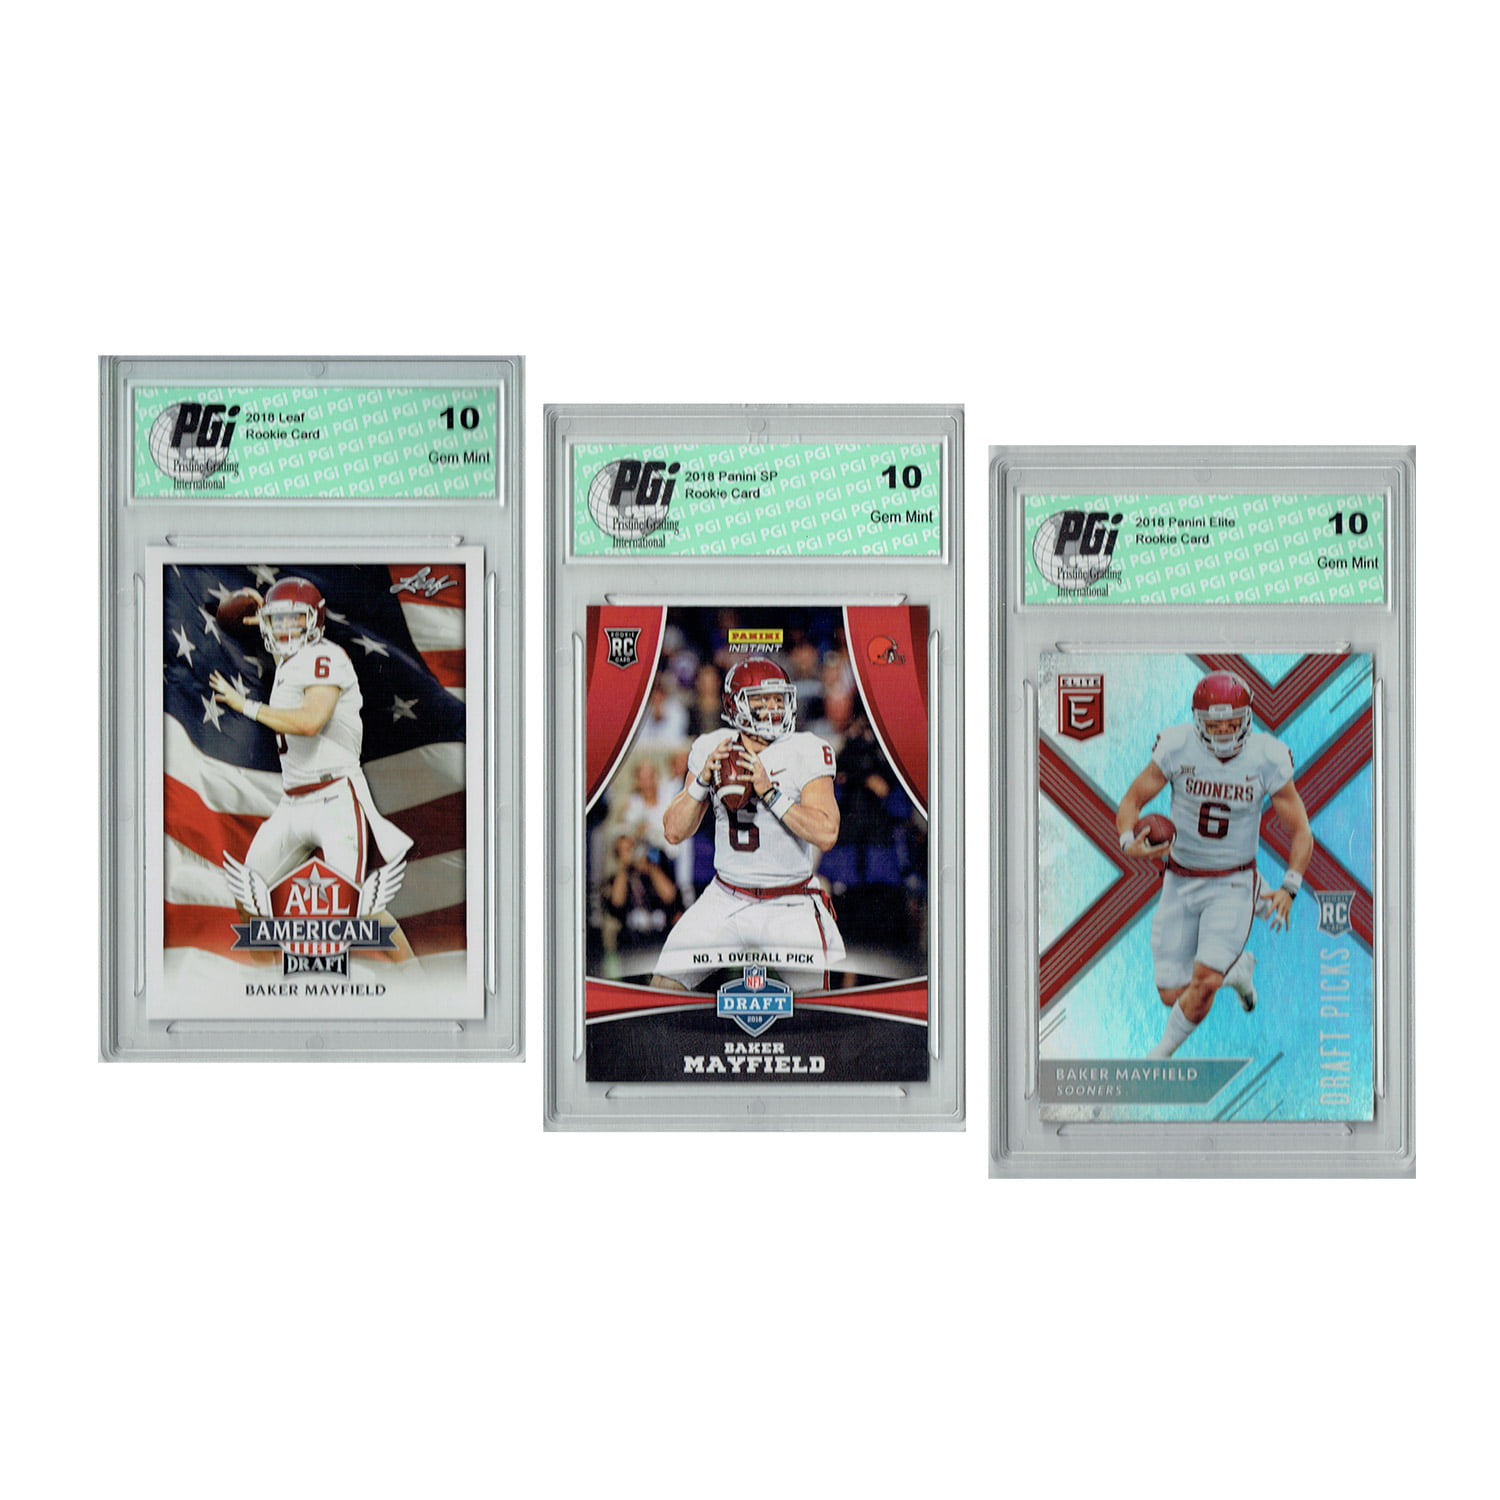 Baker Mayfield 2018 Rookie Cards 3 Pack Panini Draft Night Elite Leaf Pgi 10